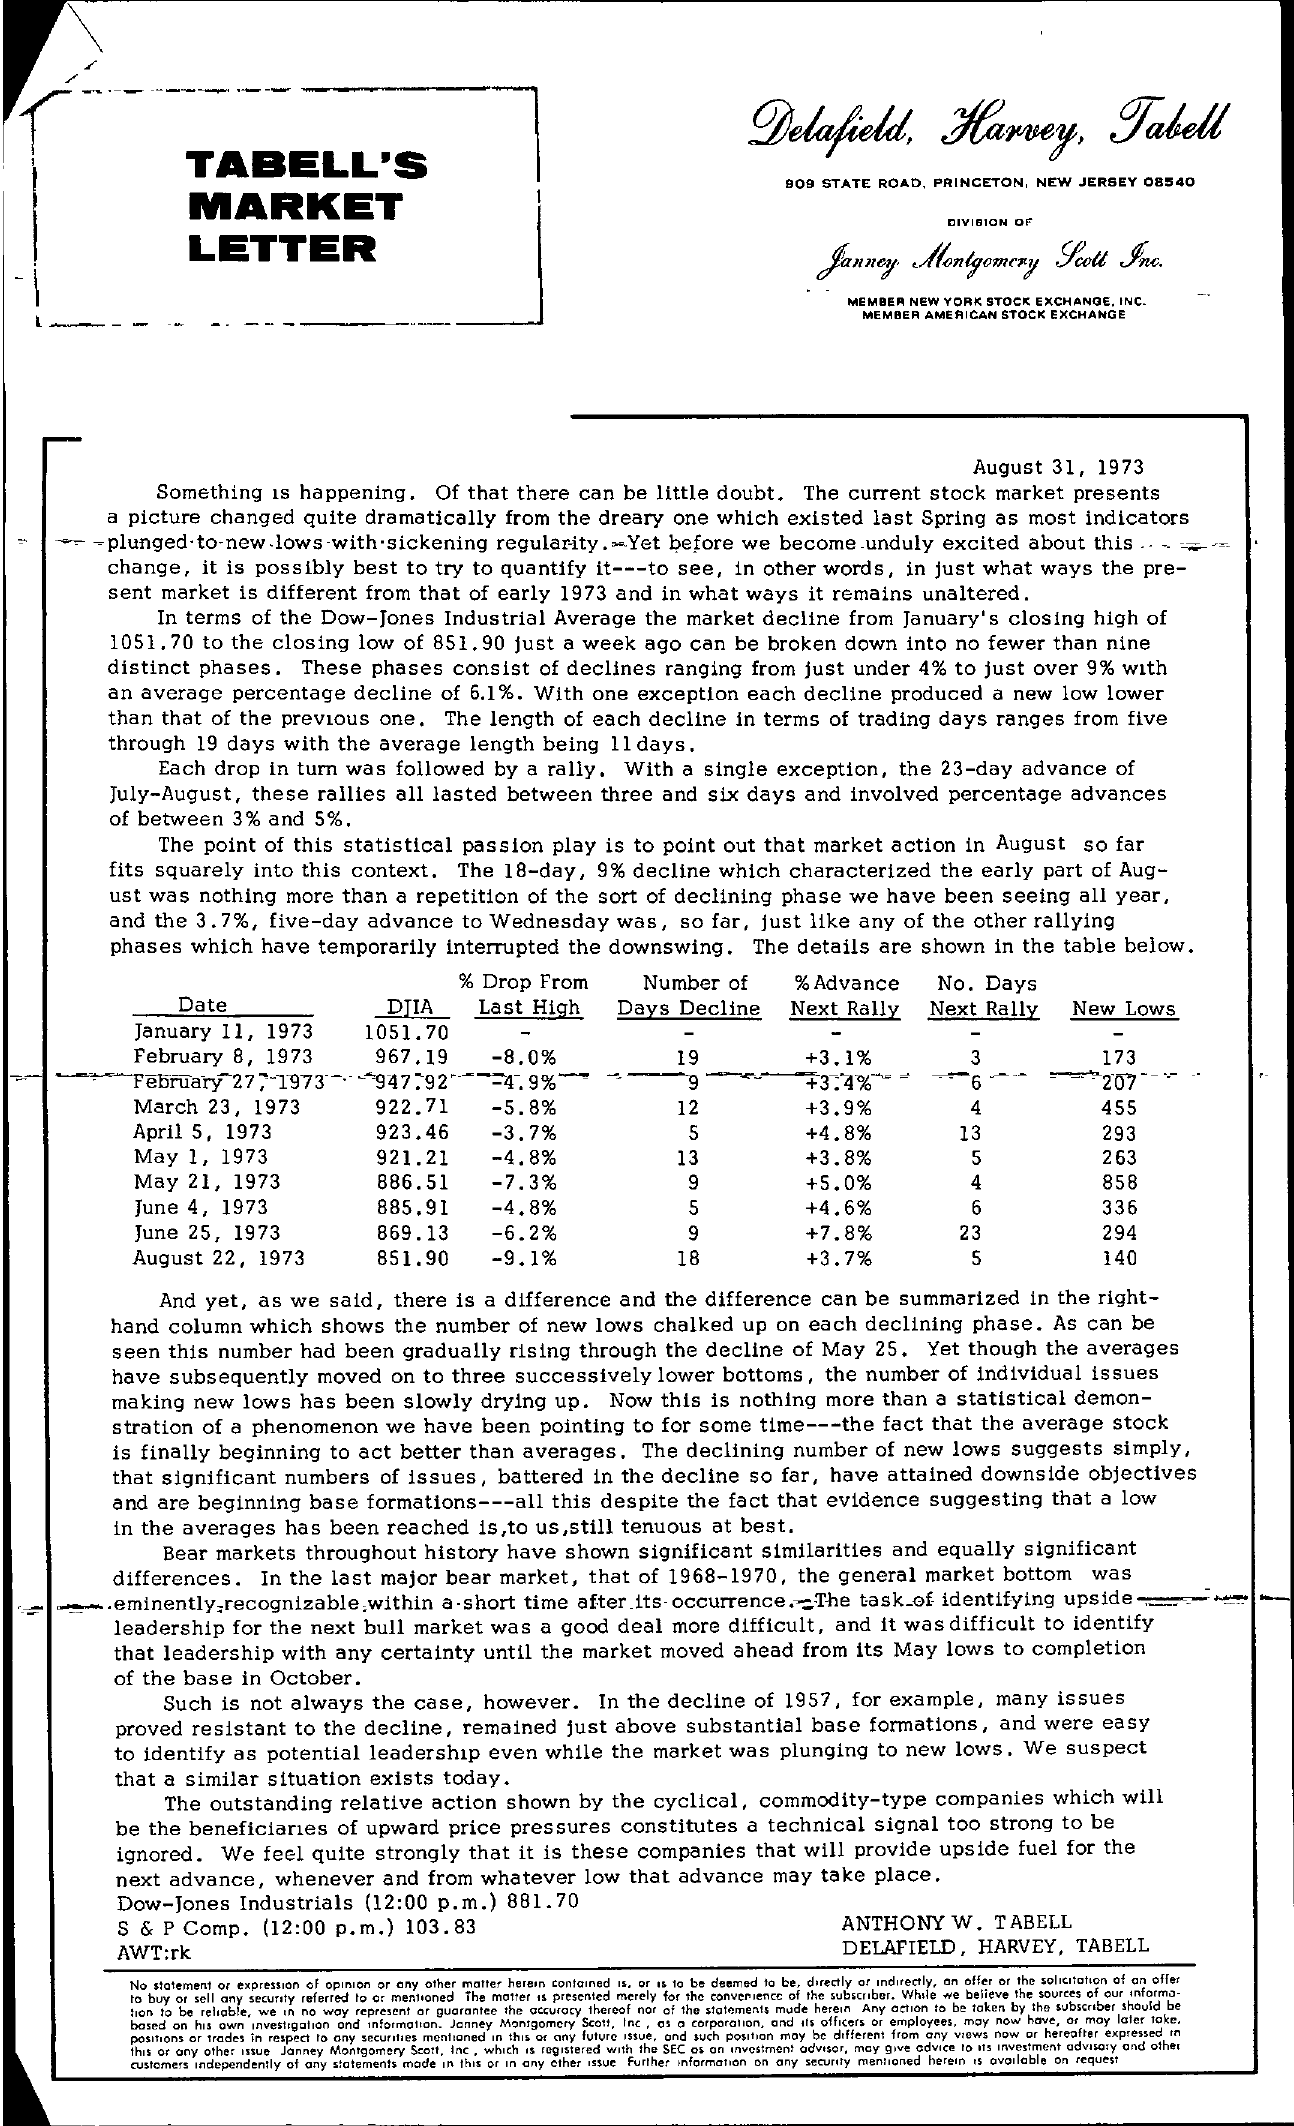 Tabell's Market Letter - August 31, 1973